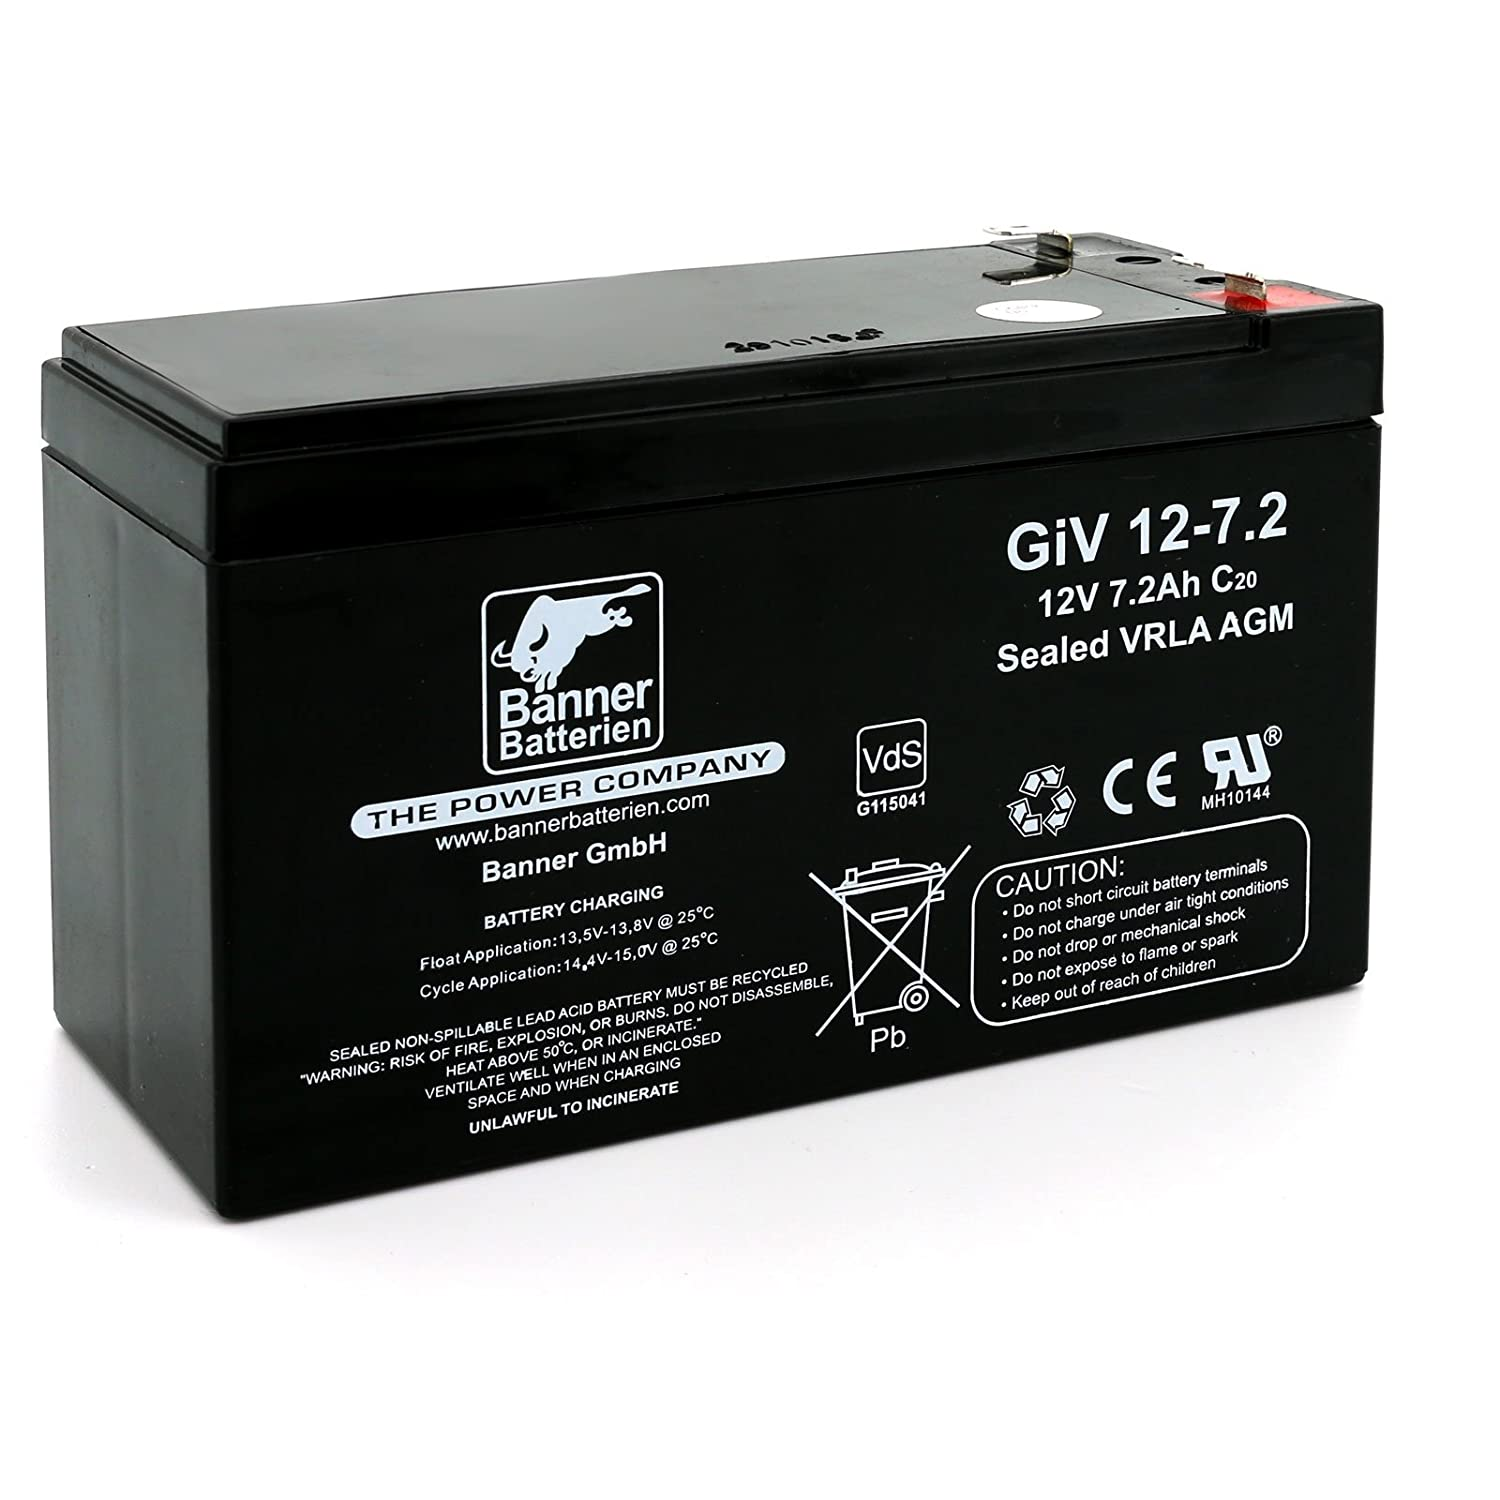 Banner Batterie Stand by Bull 12 Volt/7,2Ah Typ GiV 12-7.2